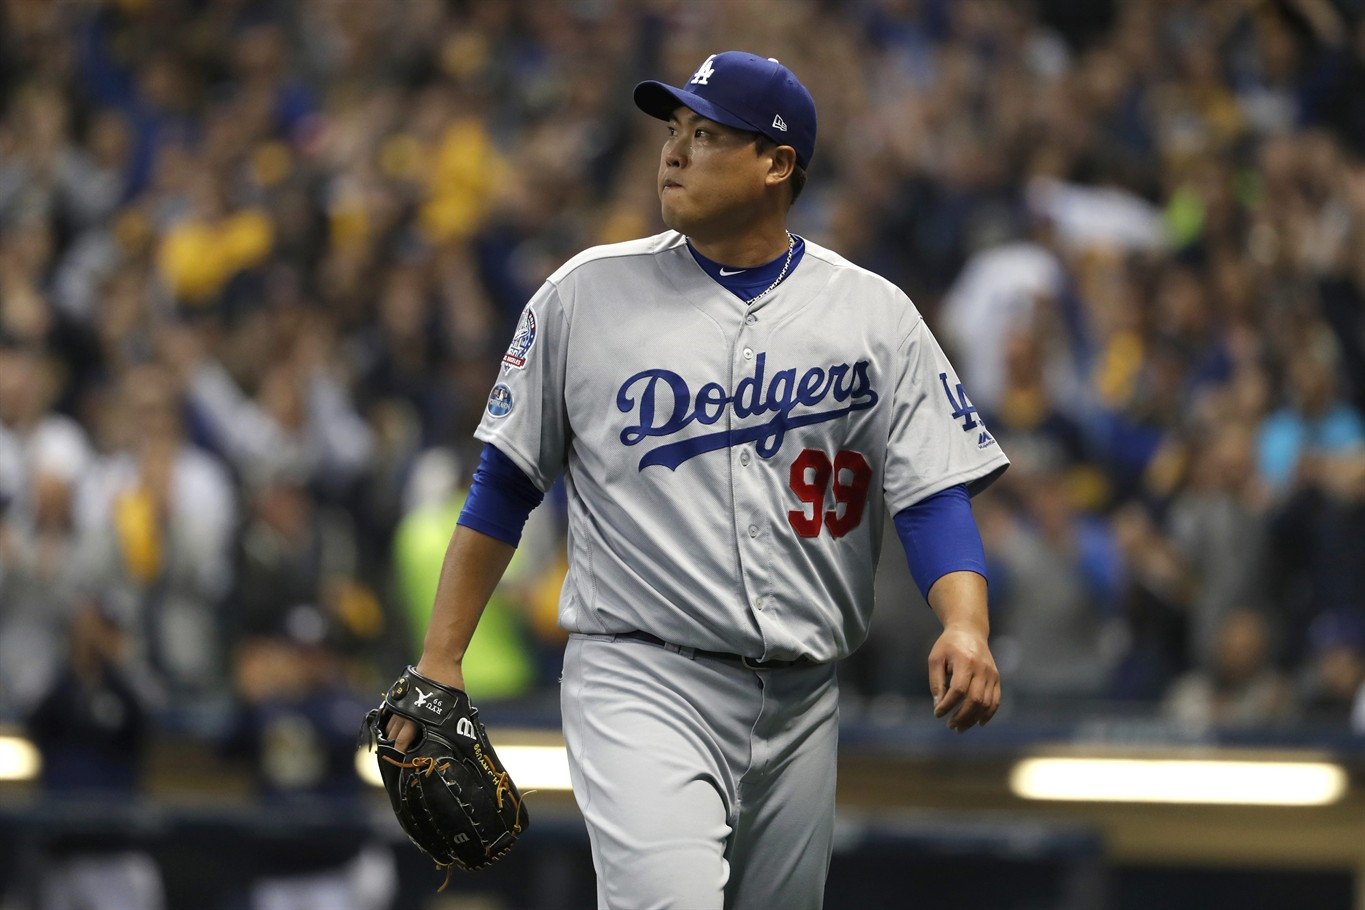 Aguilar, Brewers beat Dodgers 7-2, send NLCS to Game 7